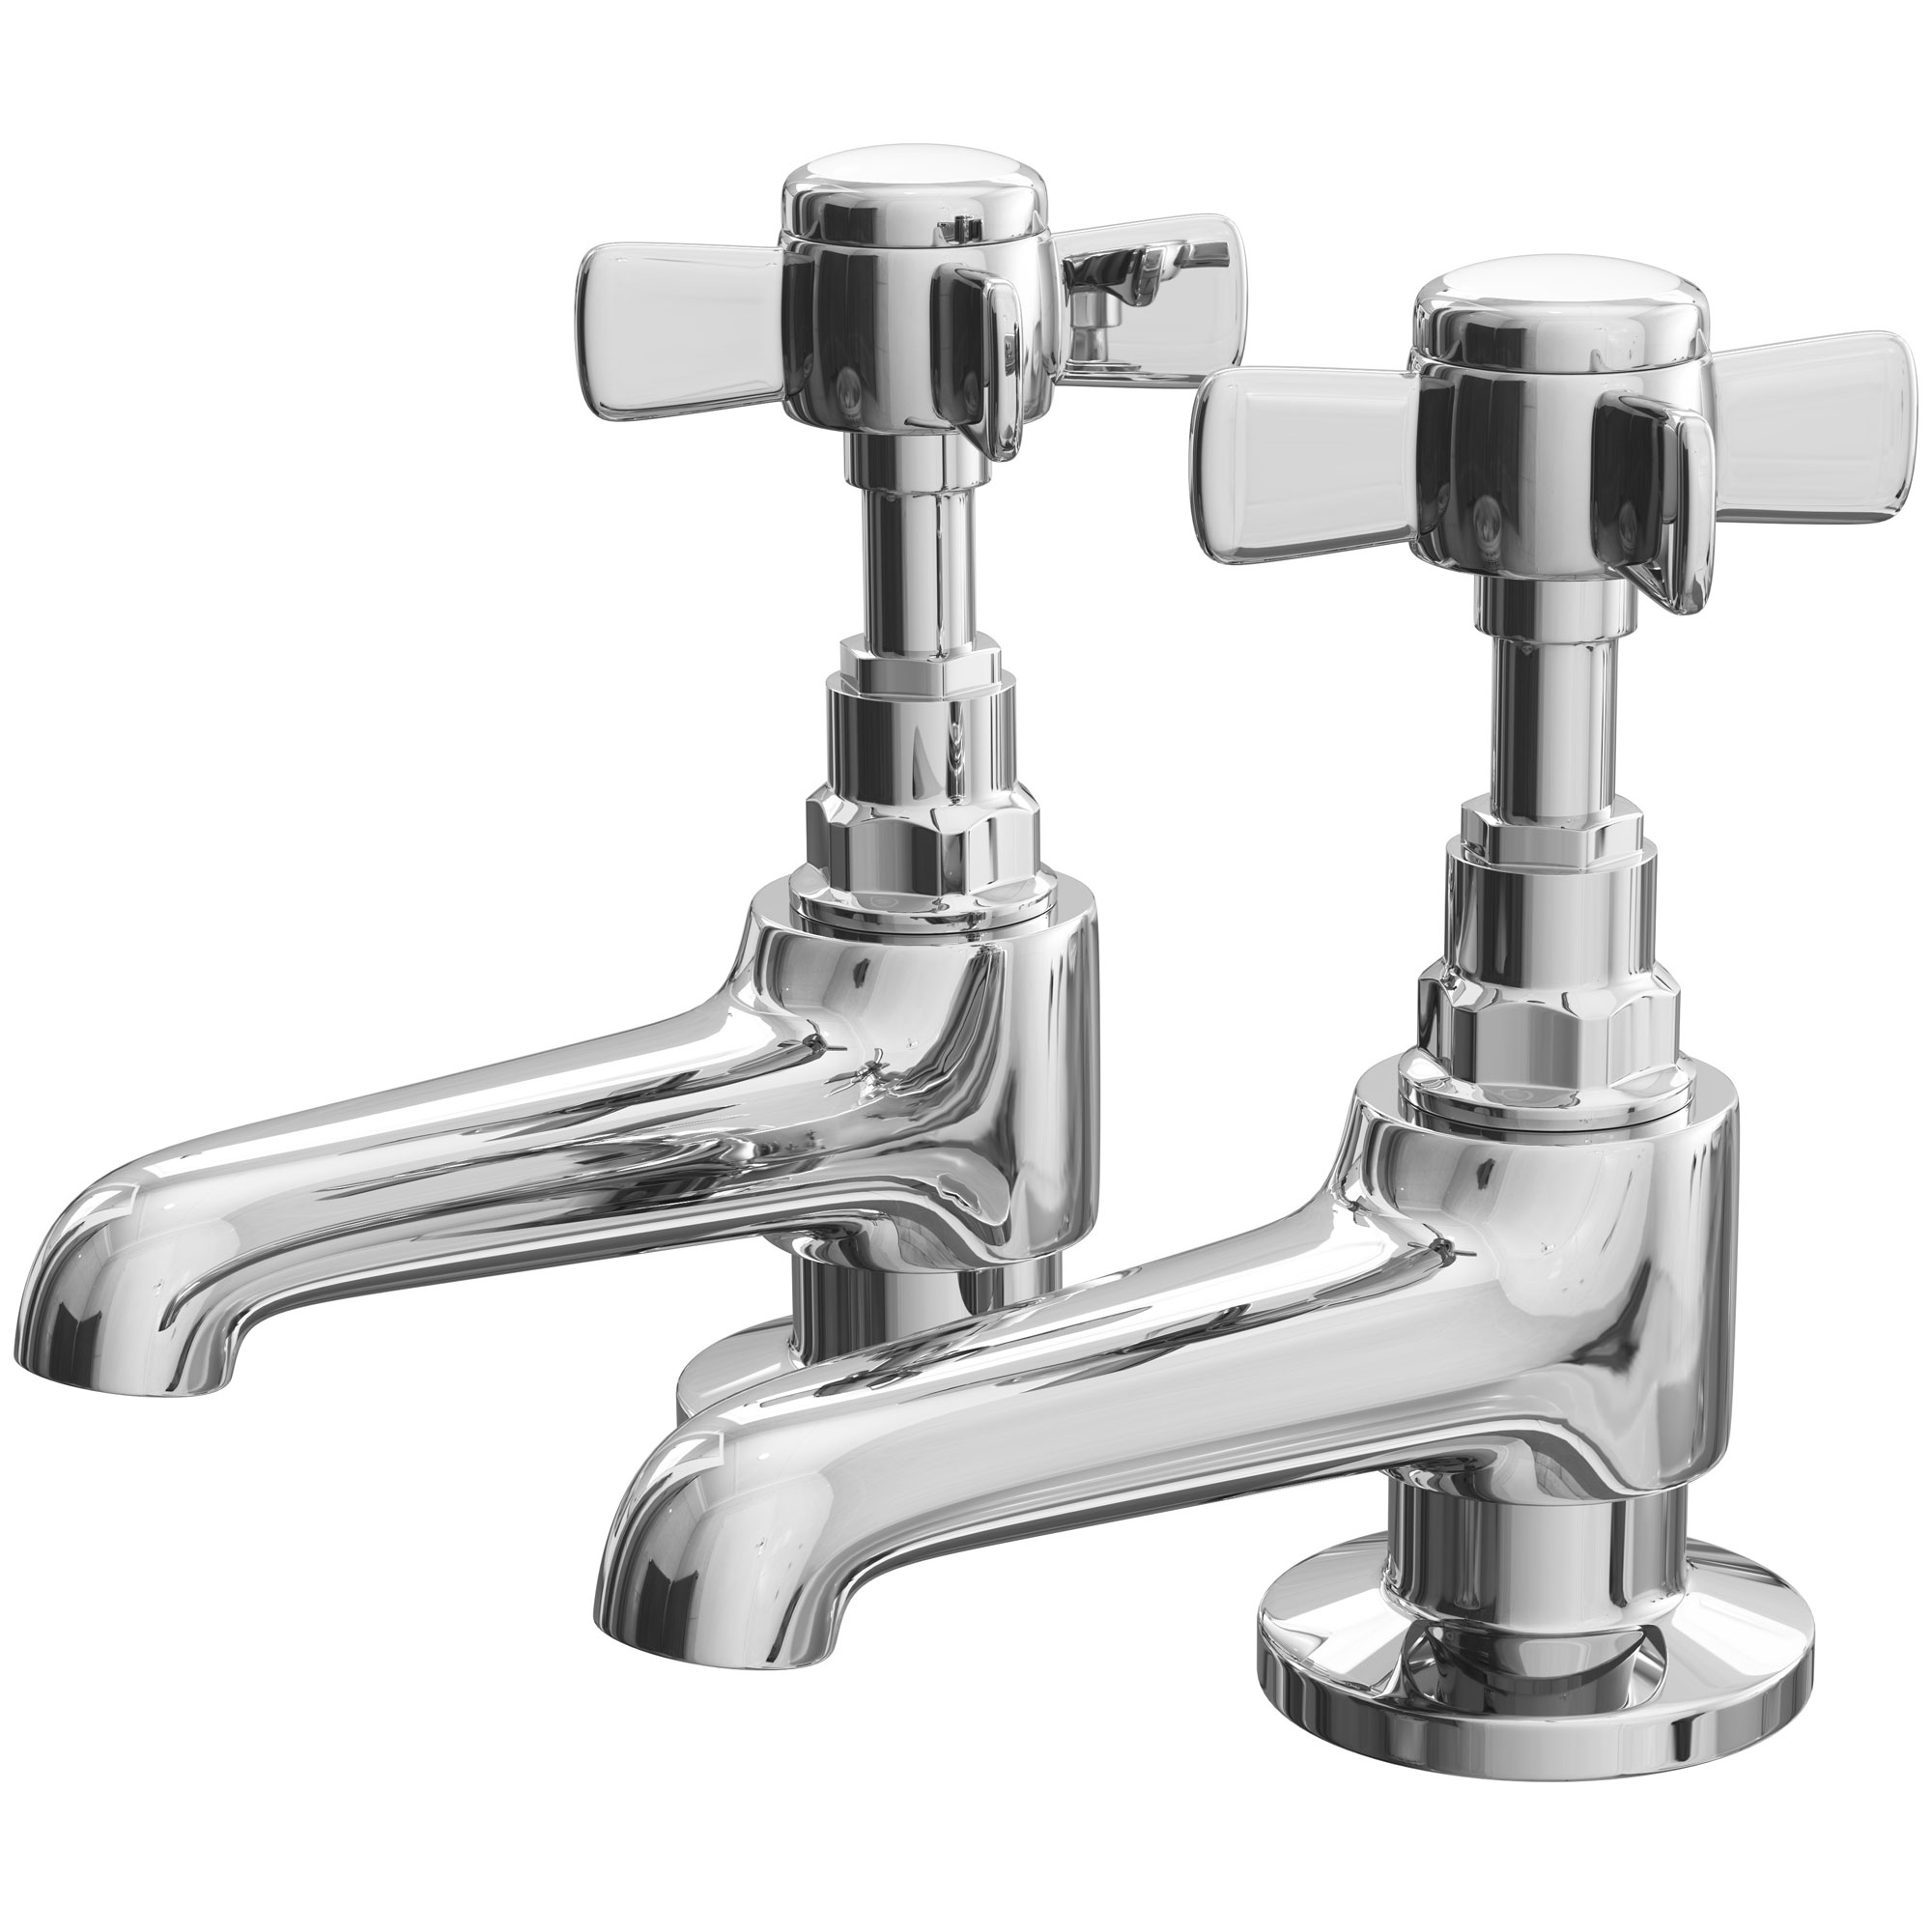 Cali Time Traditional Bath Pillar Taps - Pair - Chrome